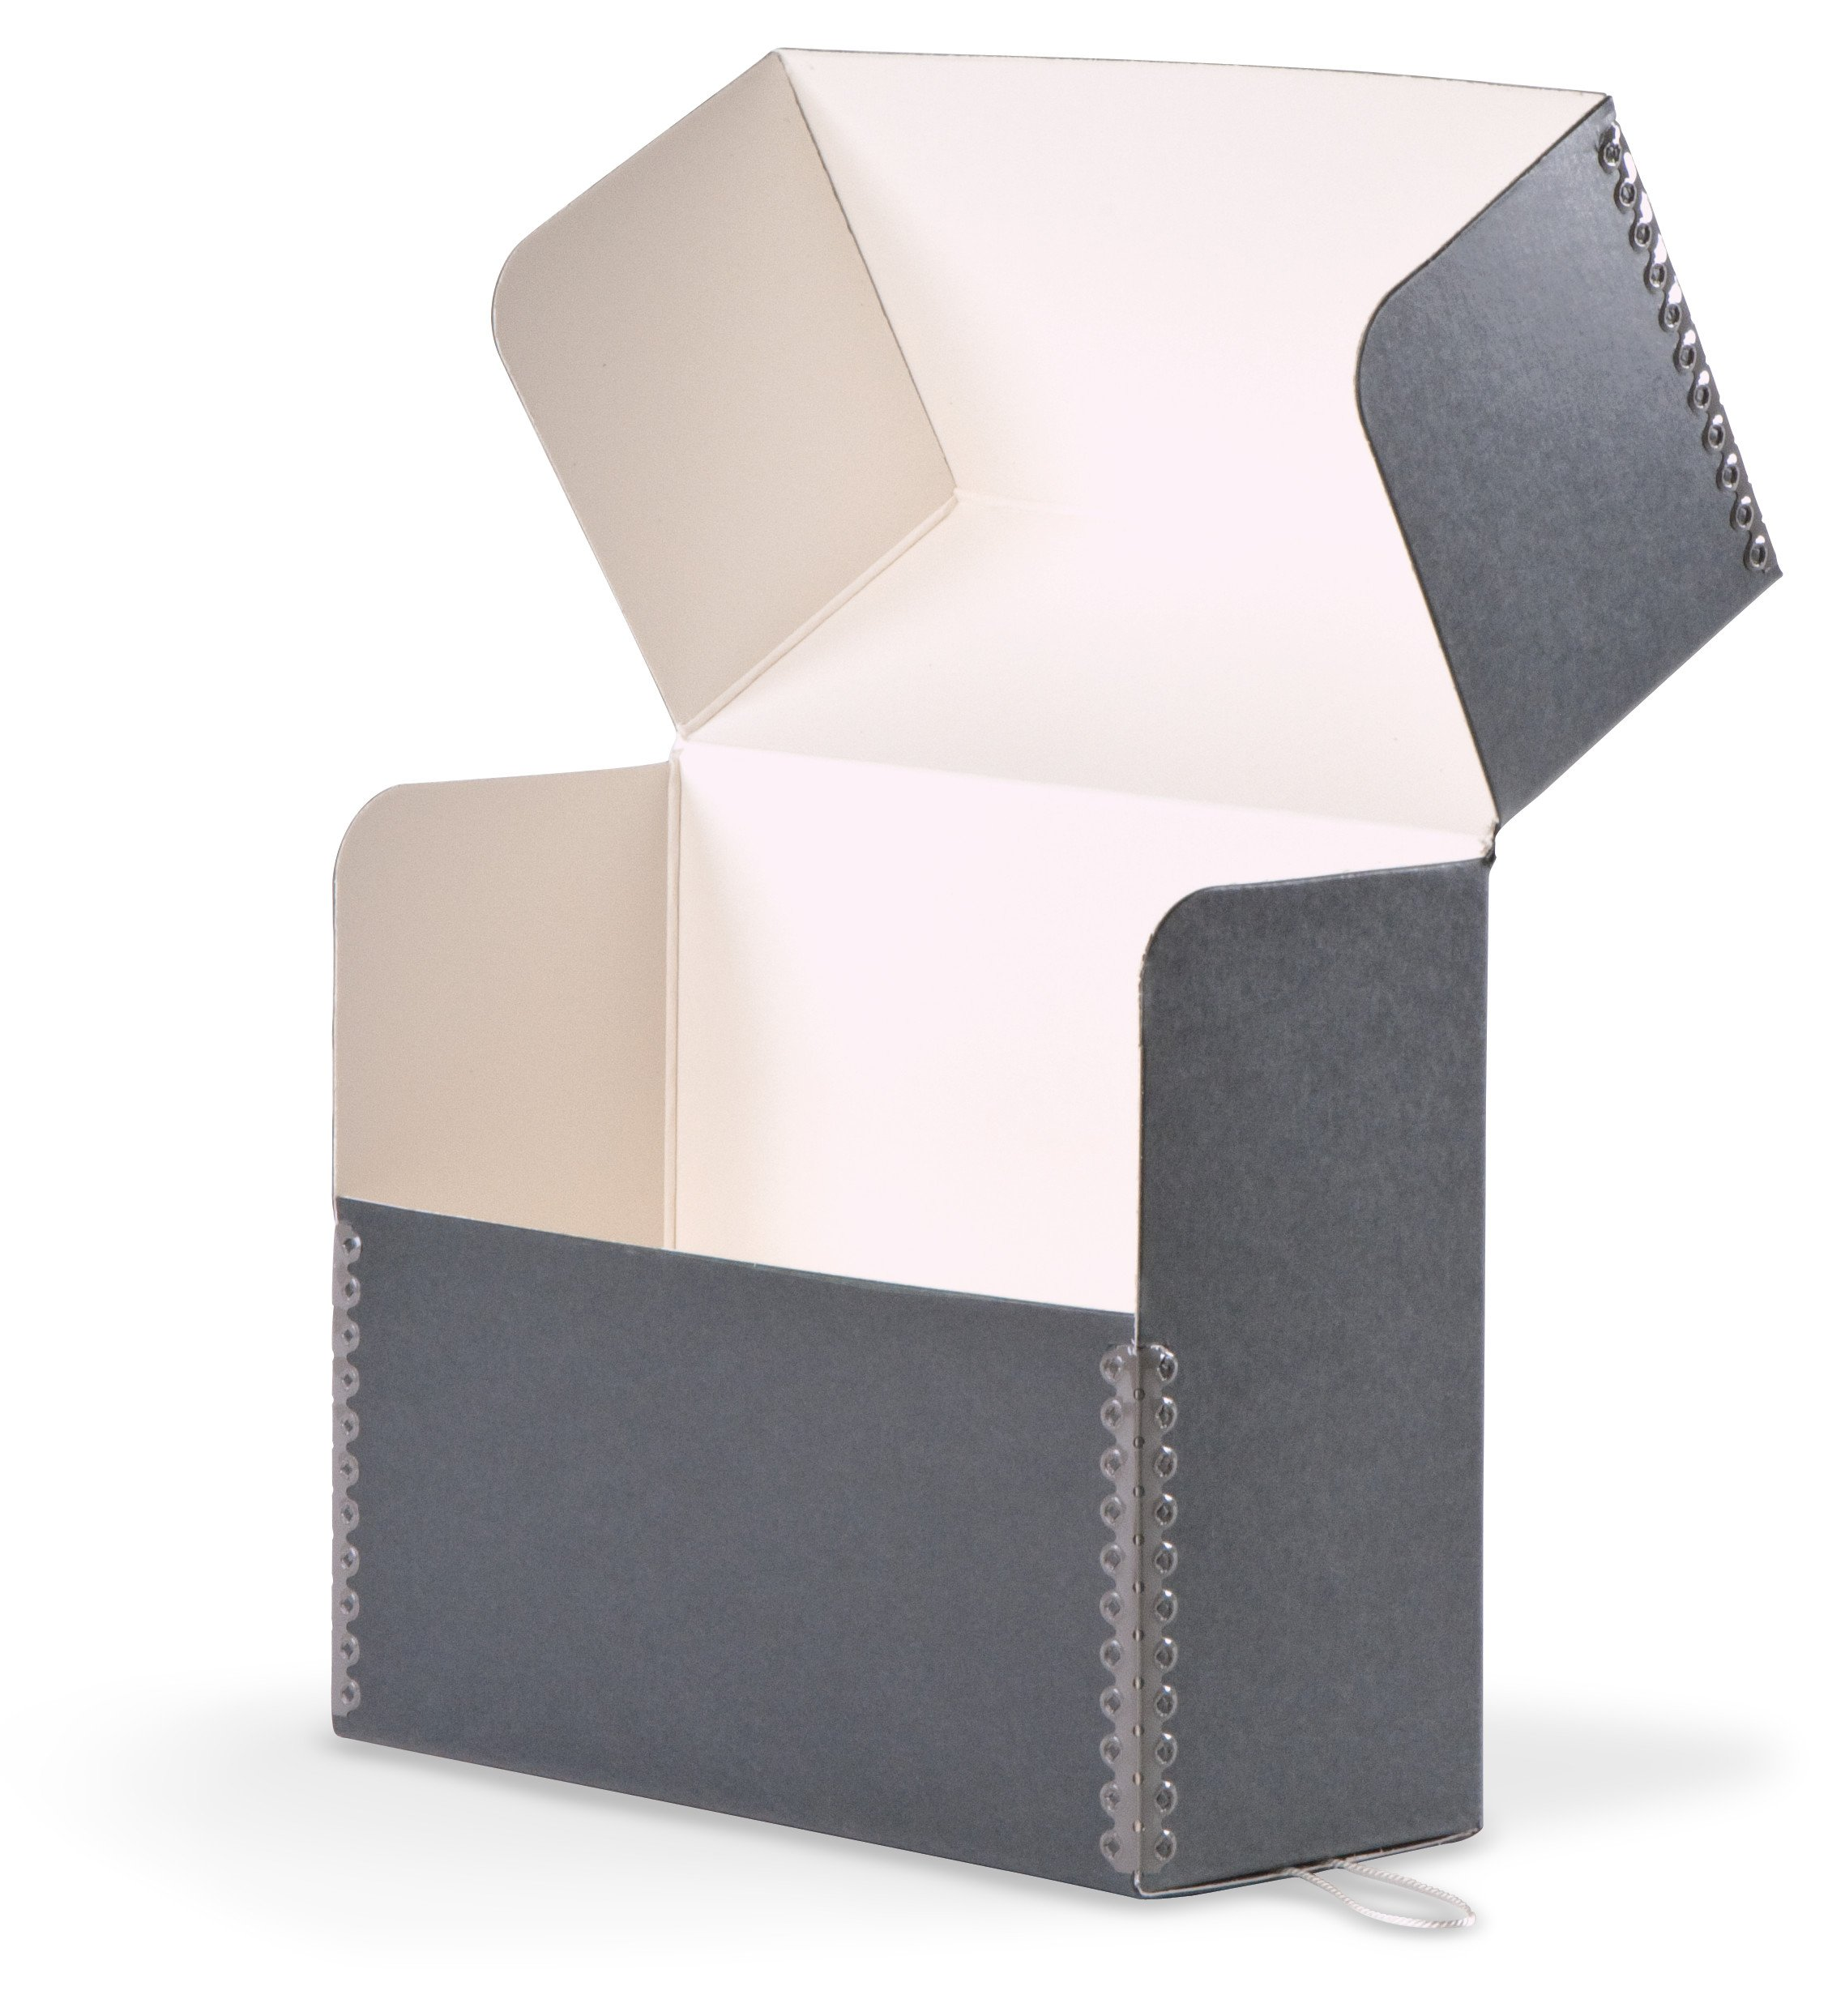 Gaylord Archival Flip-Top Document Preservation Box